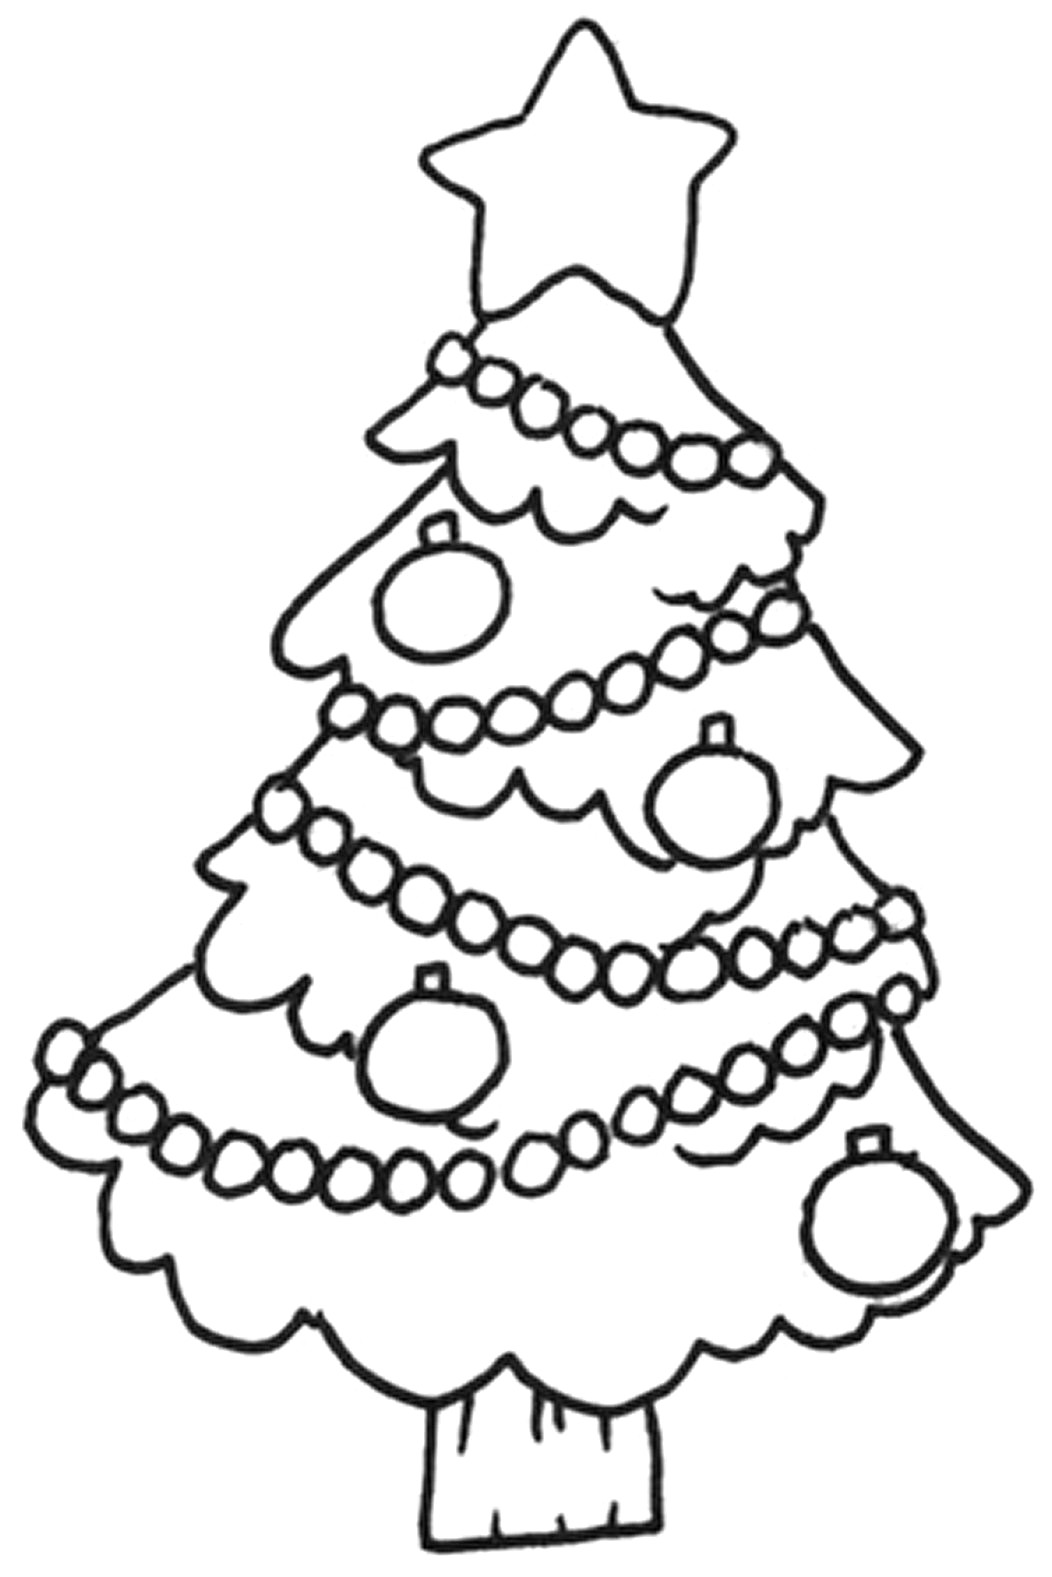 Christmas Tree Coloring Pages Printable With Blank Page Thanhhoacar Com